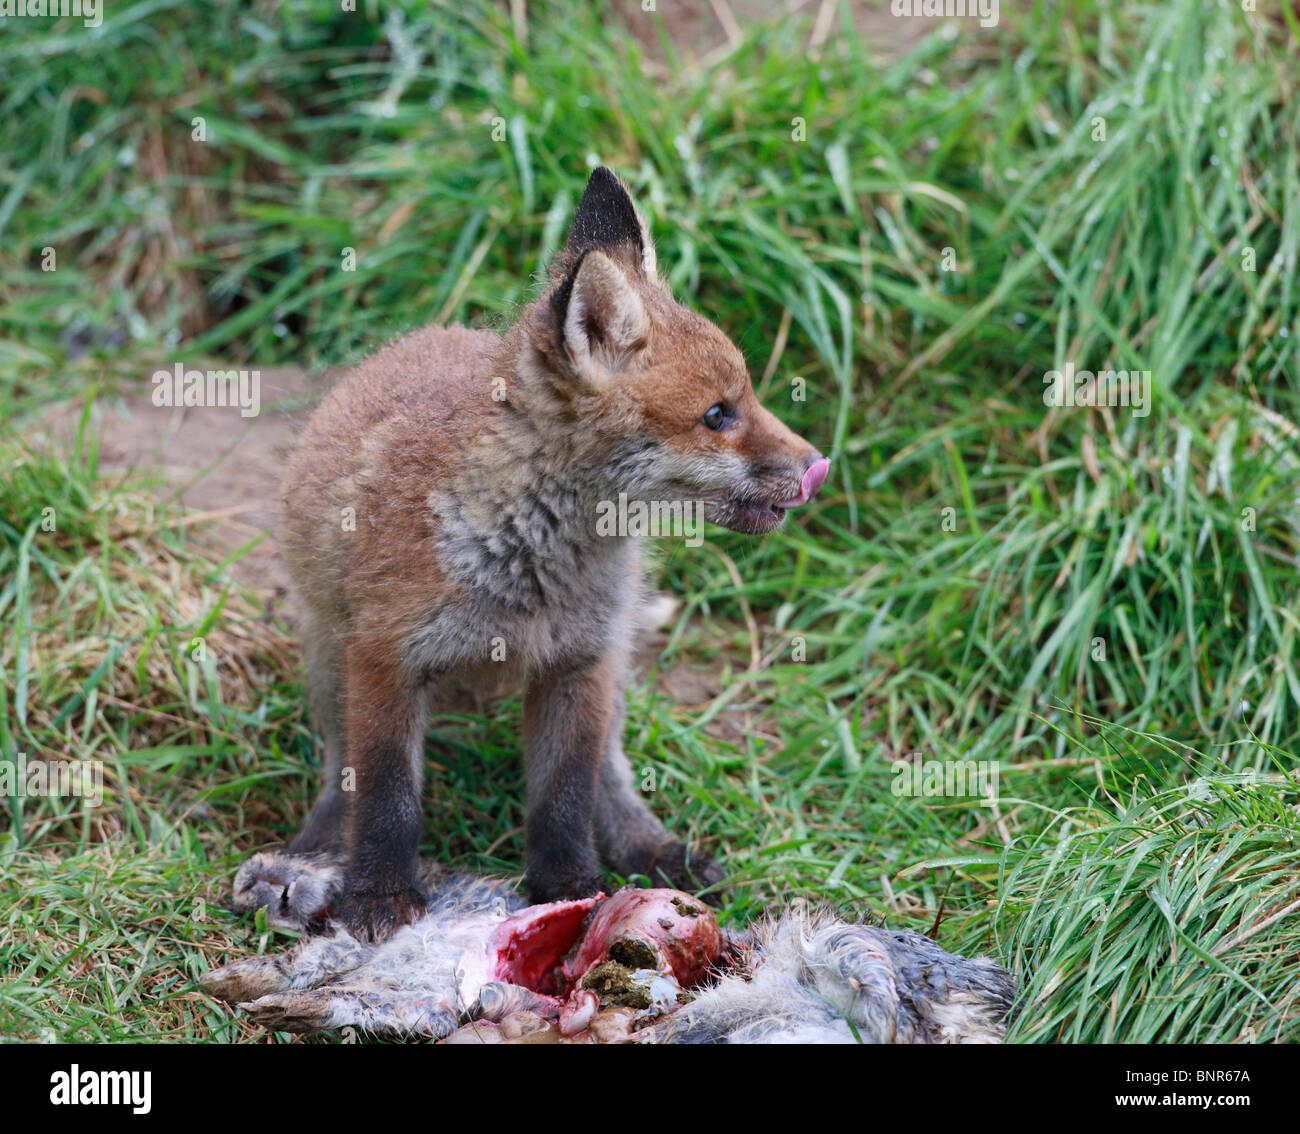 Red fox eating rabbit - photo#30